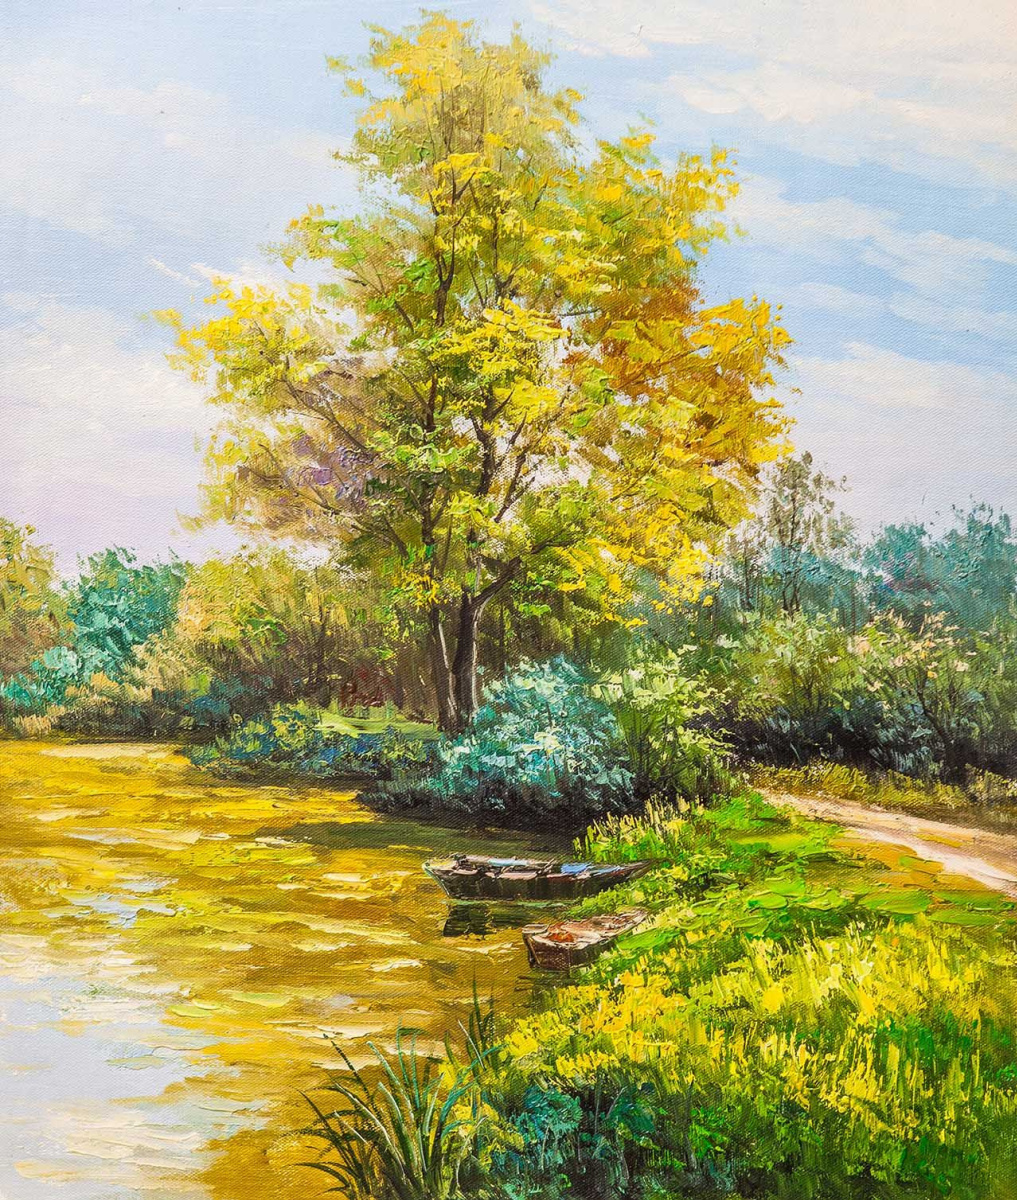 Andrey Sharabarin. On a clear day by the river